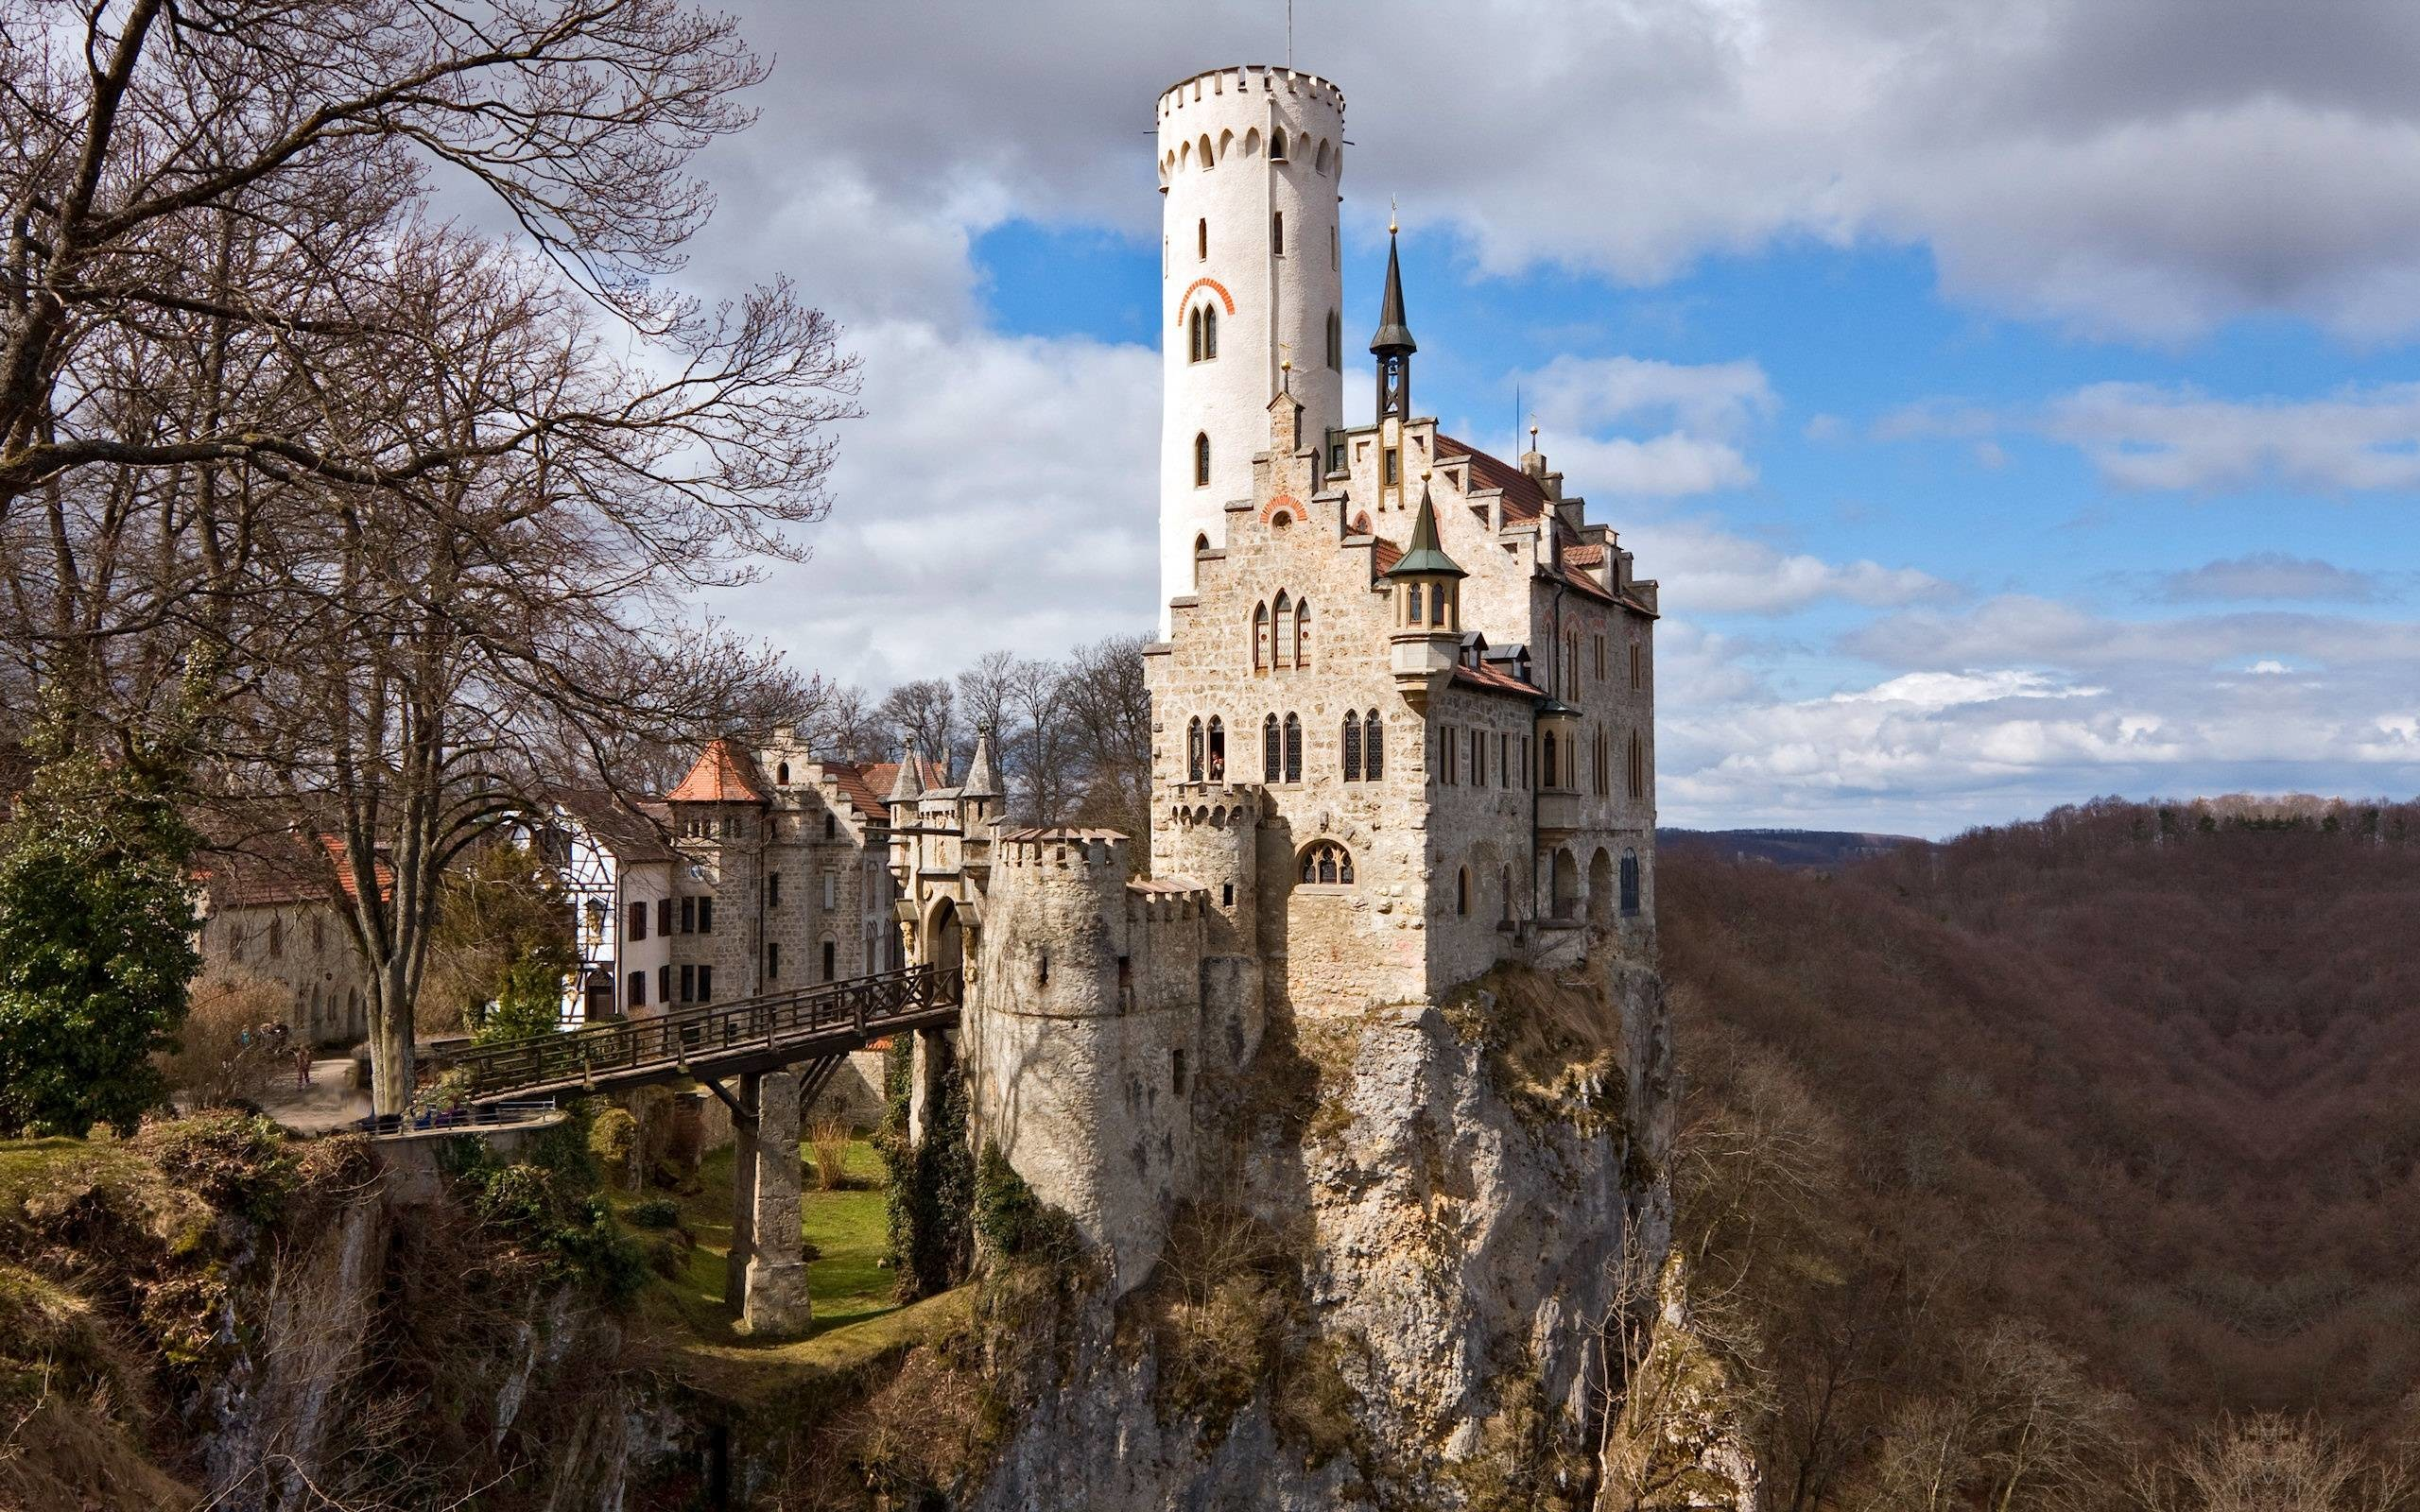 2560x1600 Lichtenstein Castle | Wallpaper pics